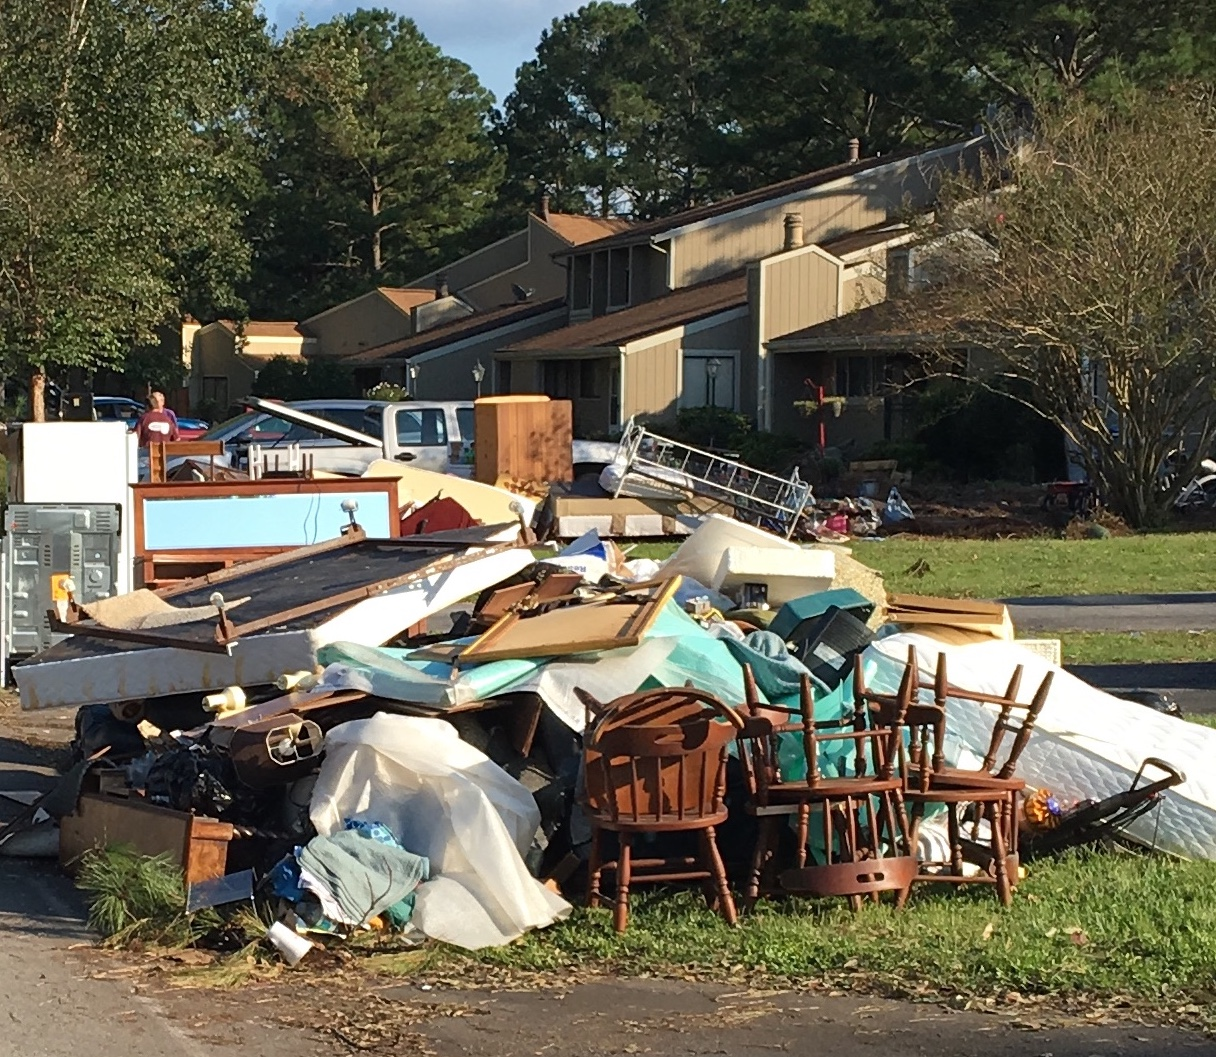 Piles of discarded furnishings line the streets of River Bend, a neighborhood west of downtown New Bern, NC.